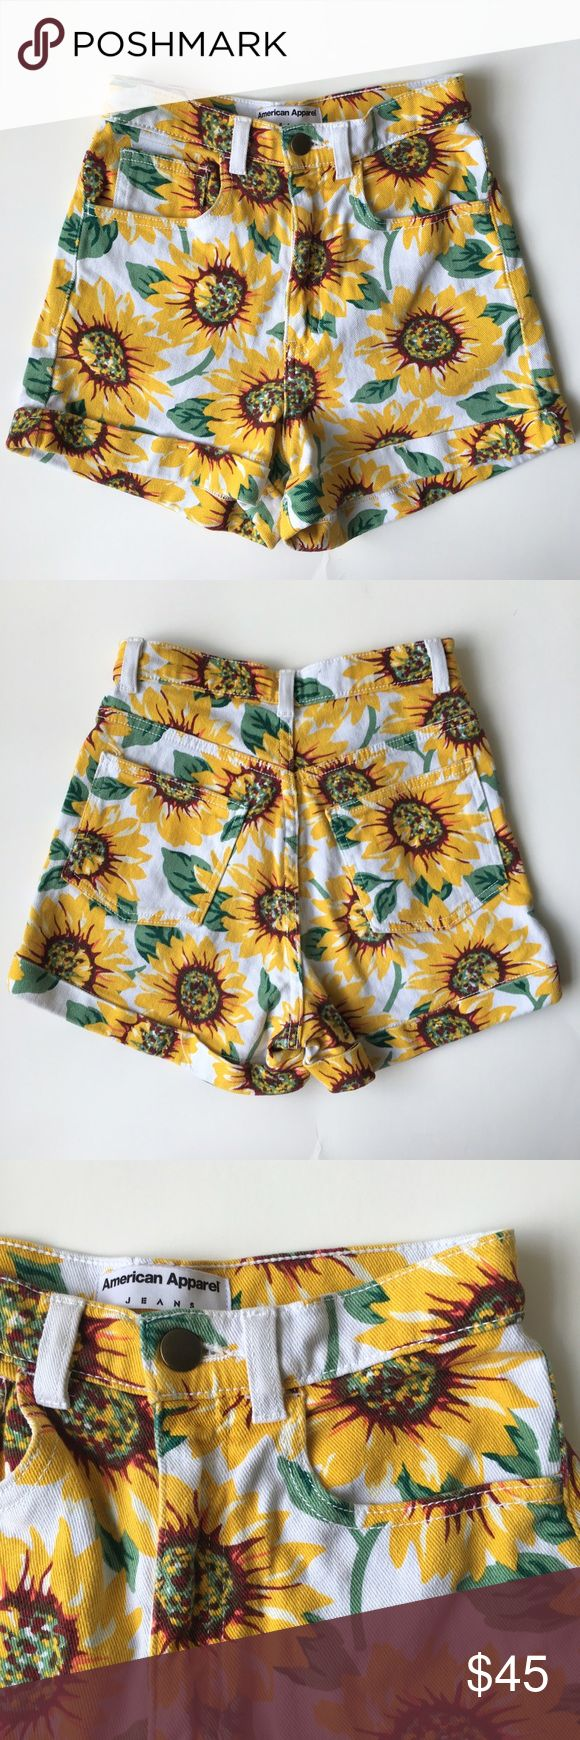 American Apparel Sunflower High-Waisted Shorts These are THE sunflower shorts from American Apparel. Sooo cute, but they just don't fit me anymore! Size 24/25, they do have some stretch. These are the perfect shorts for summer! White denim with an adorable sunflower pattern. So flattering. Perfect condition. American Apparel Shorts Jean Shorts